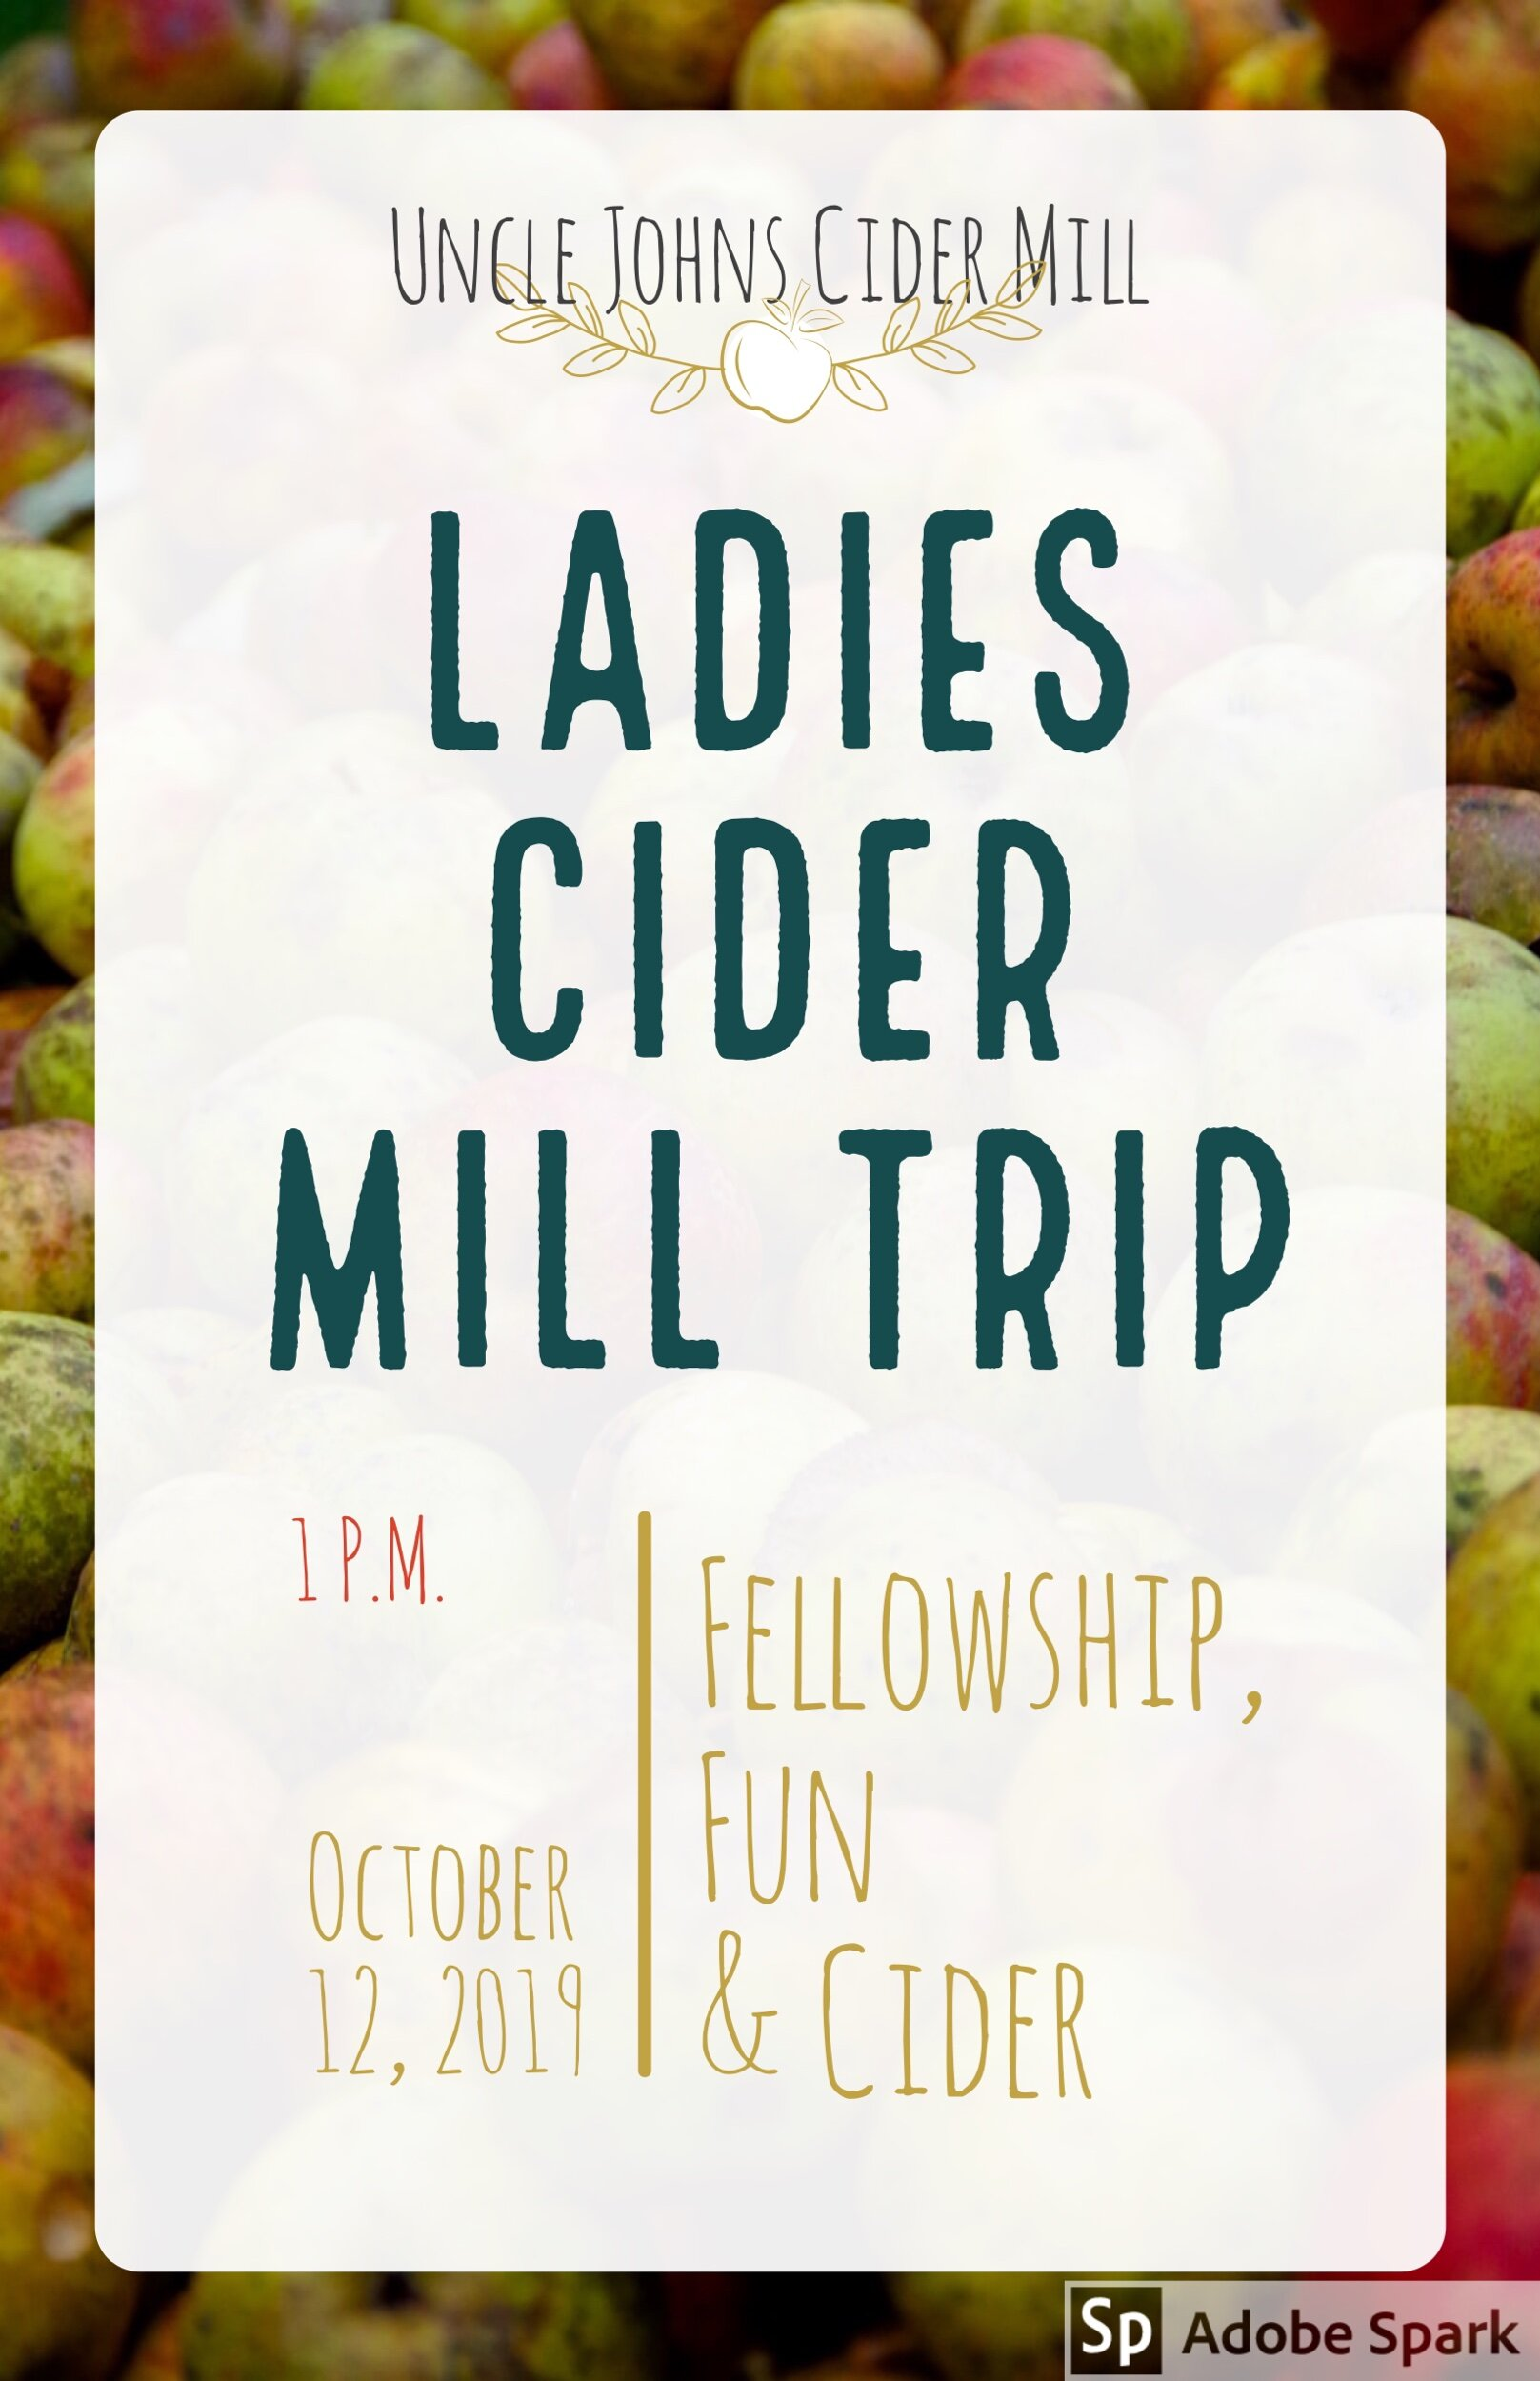 Ladies JOIN IS FOR A FUN Day!